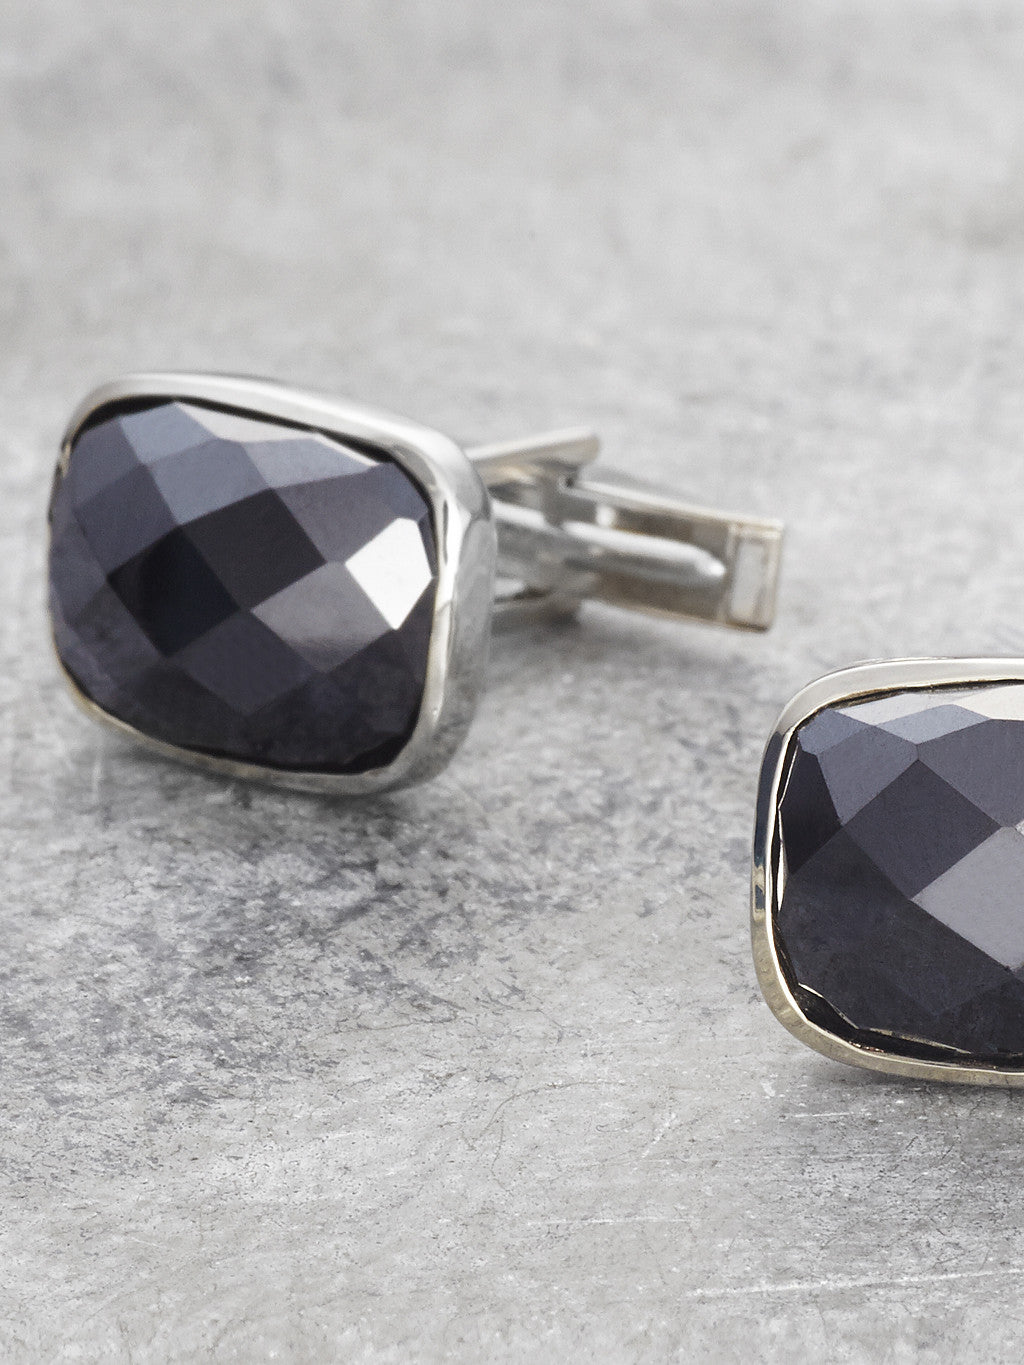 Black Onyx Cufflinks detail